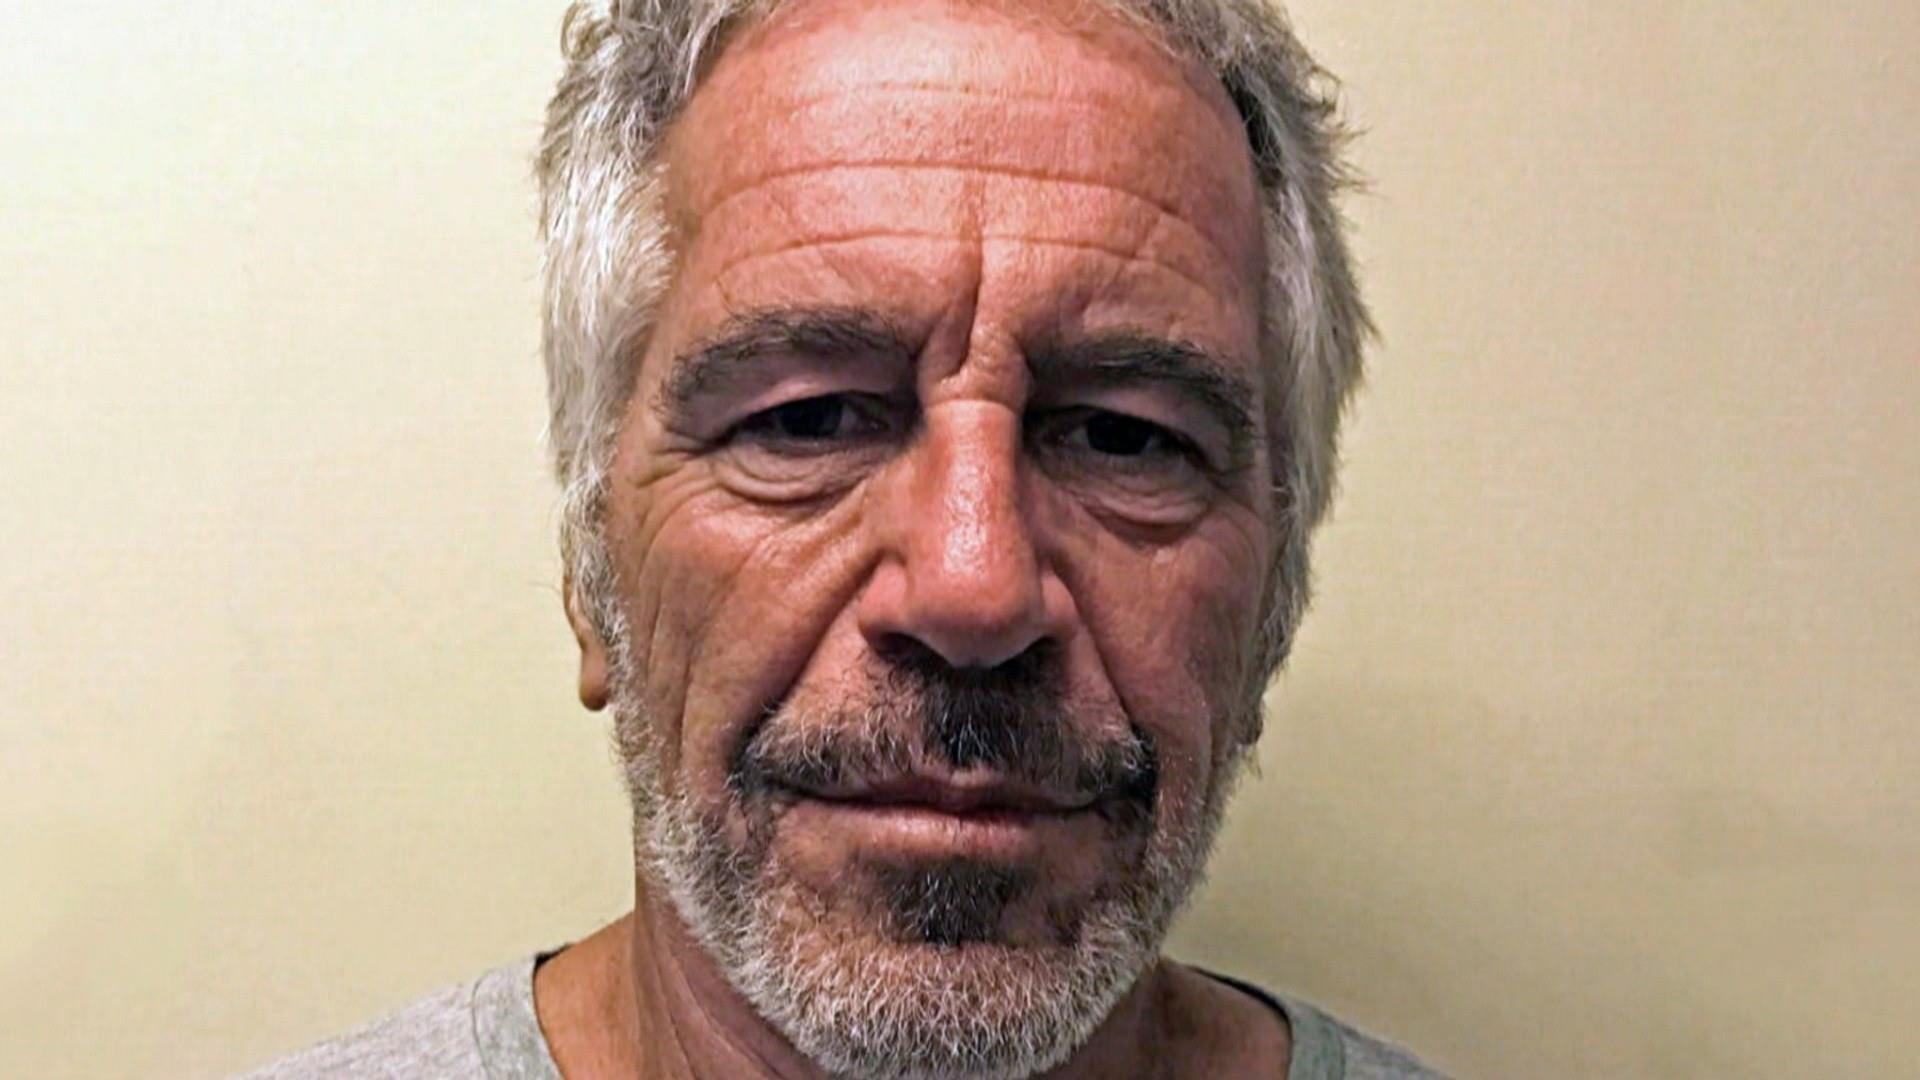 Spotlight turns to Jeffrey Epstein's younger brother